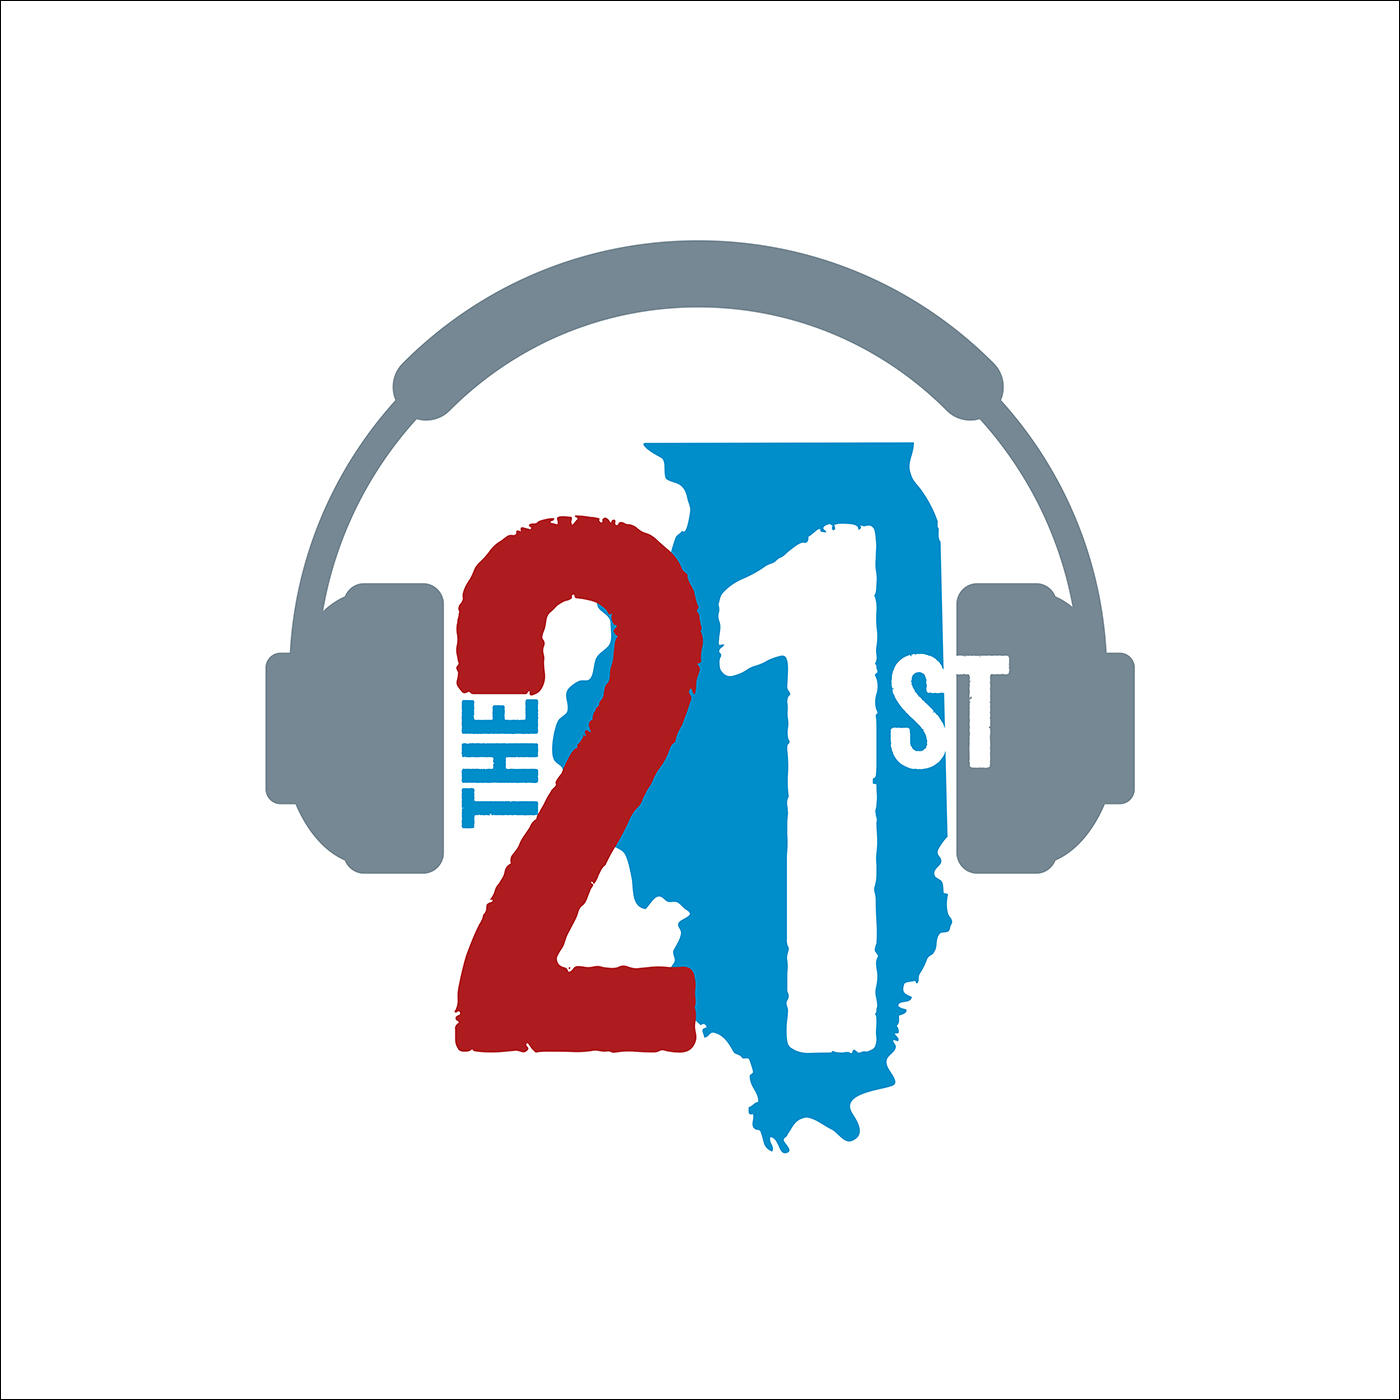 the 21st npr illinois